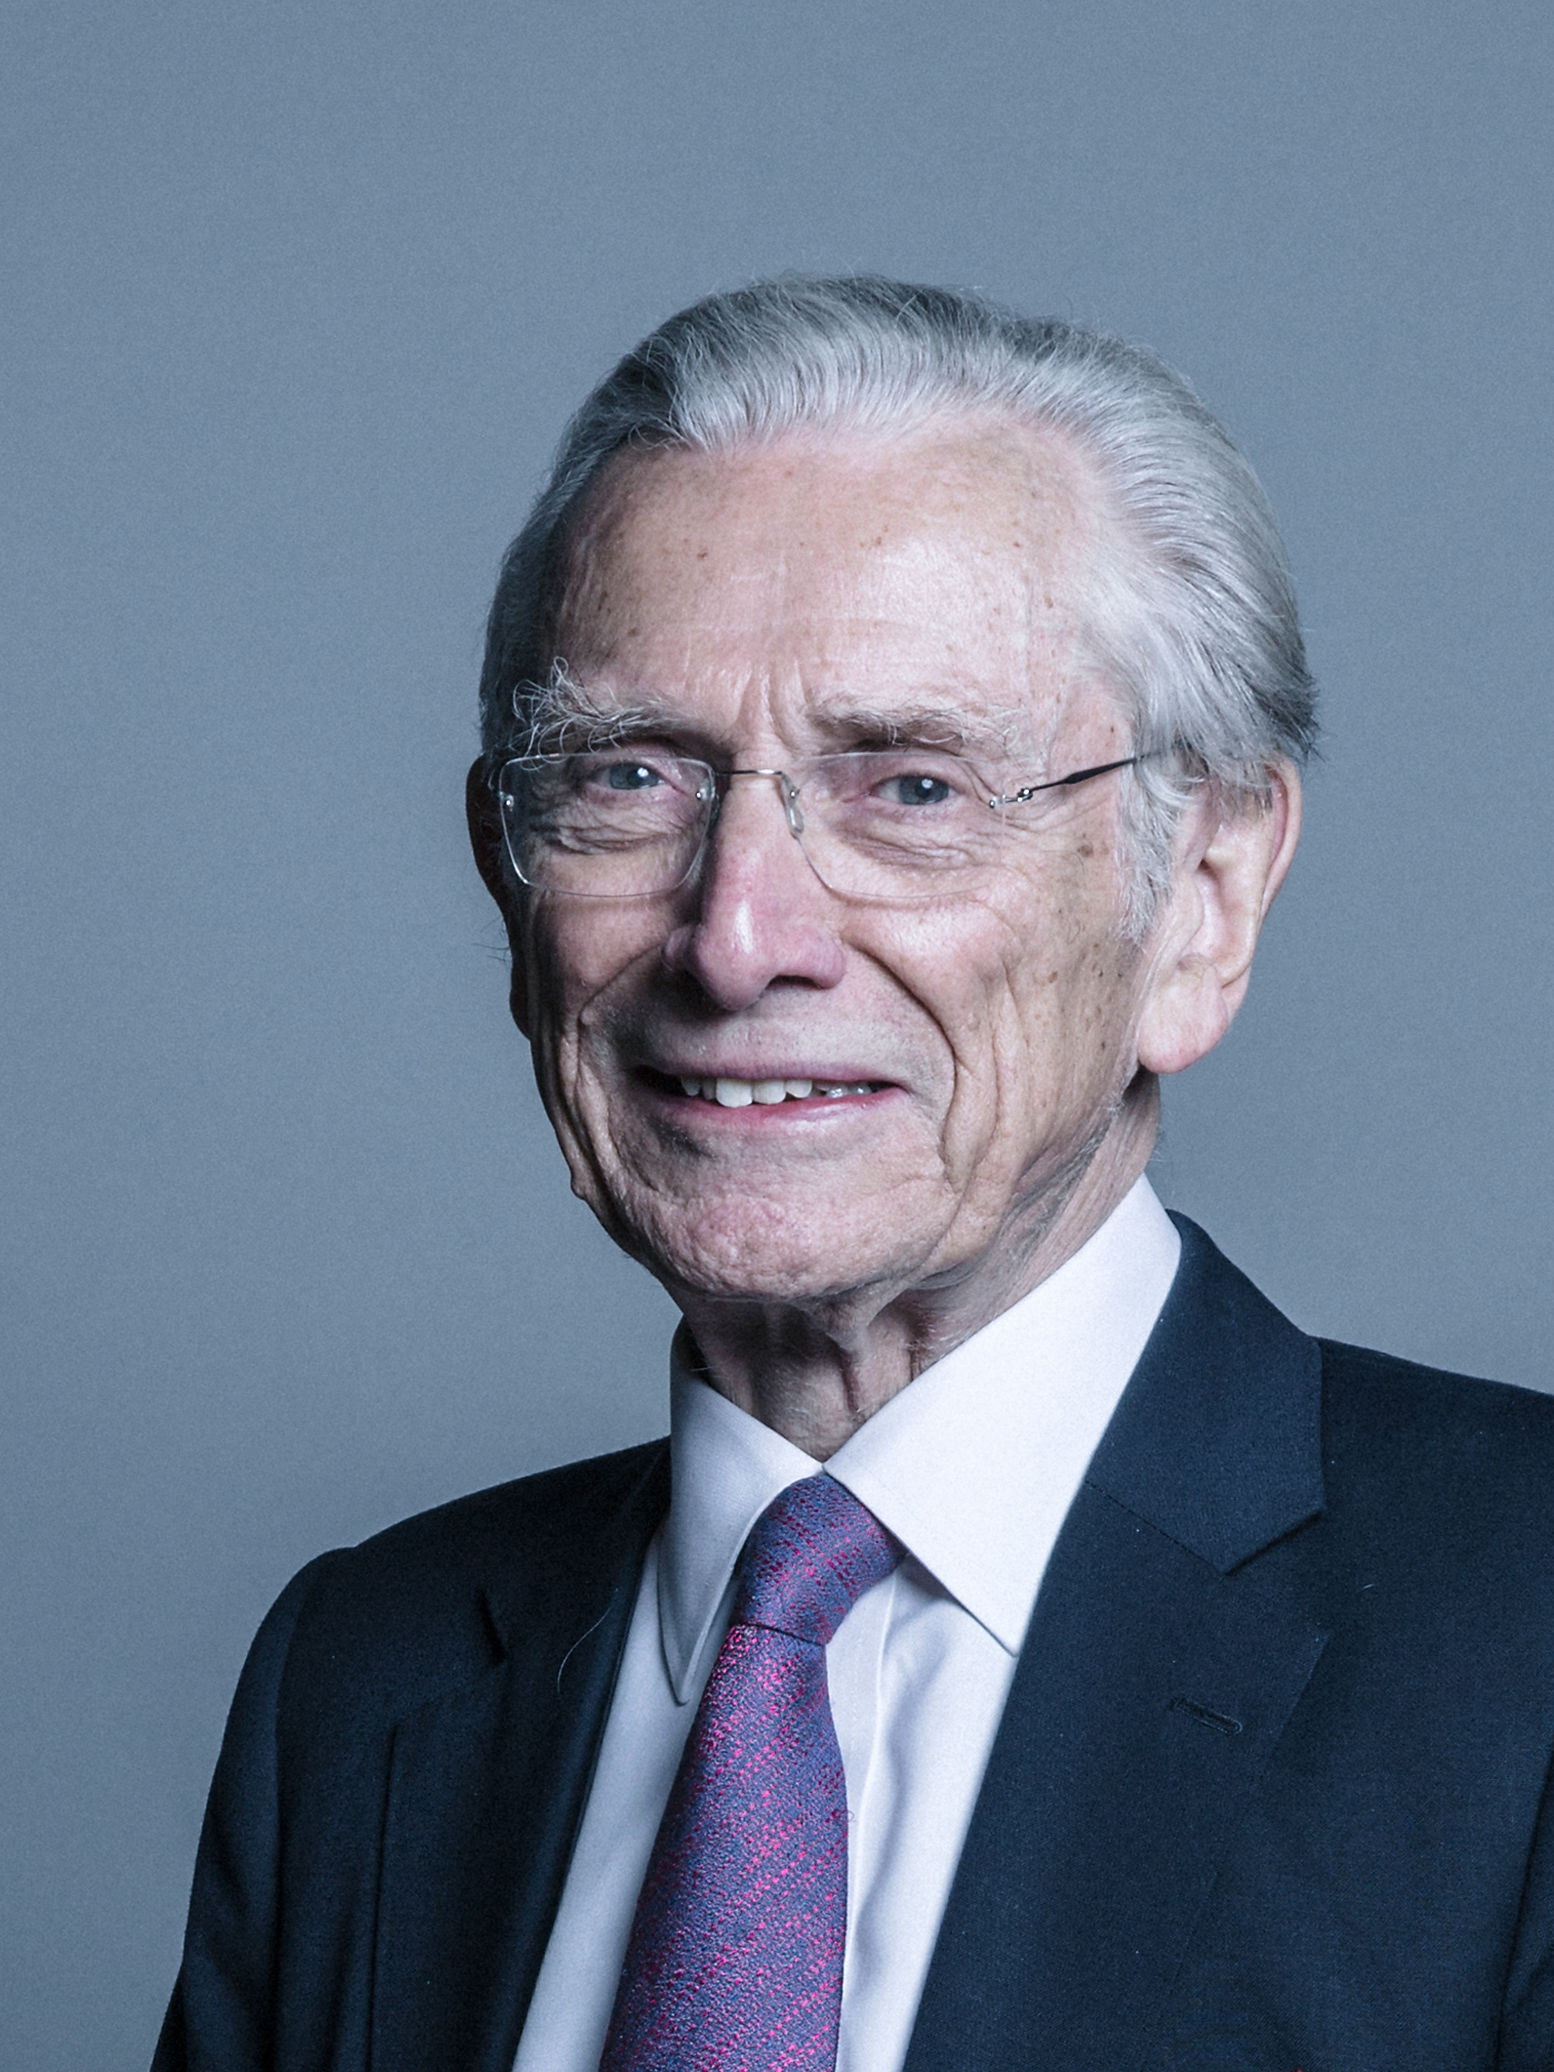 File:Official portrait of Lord Fowler crop 2.jpg - Wikipedia